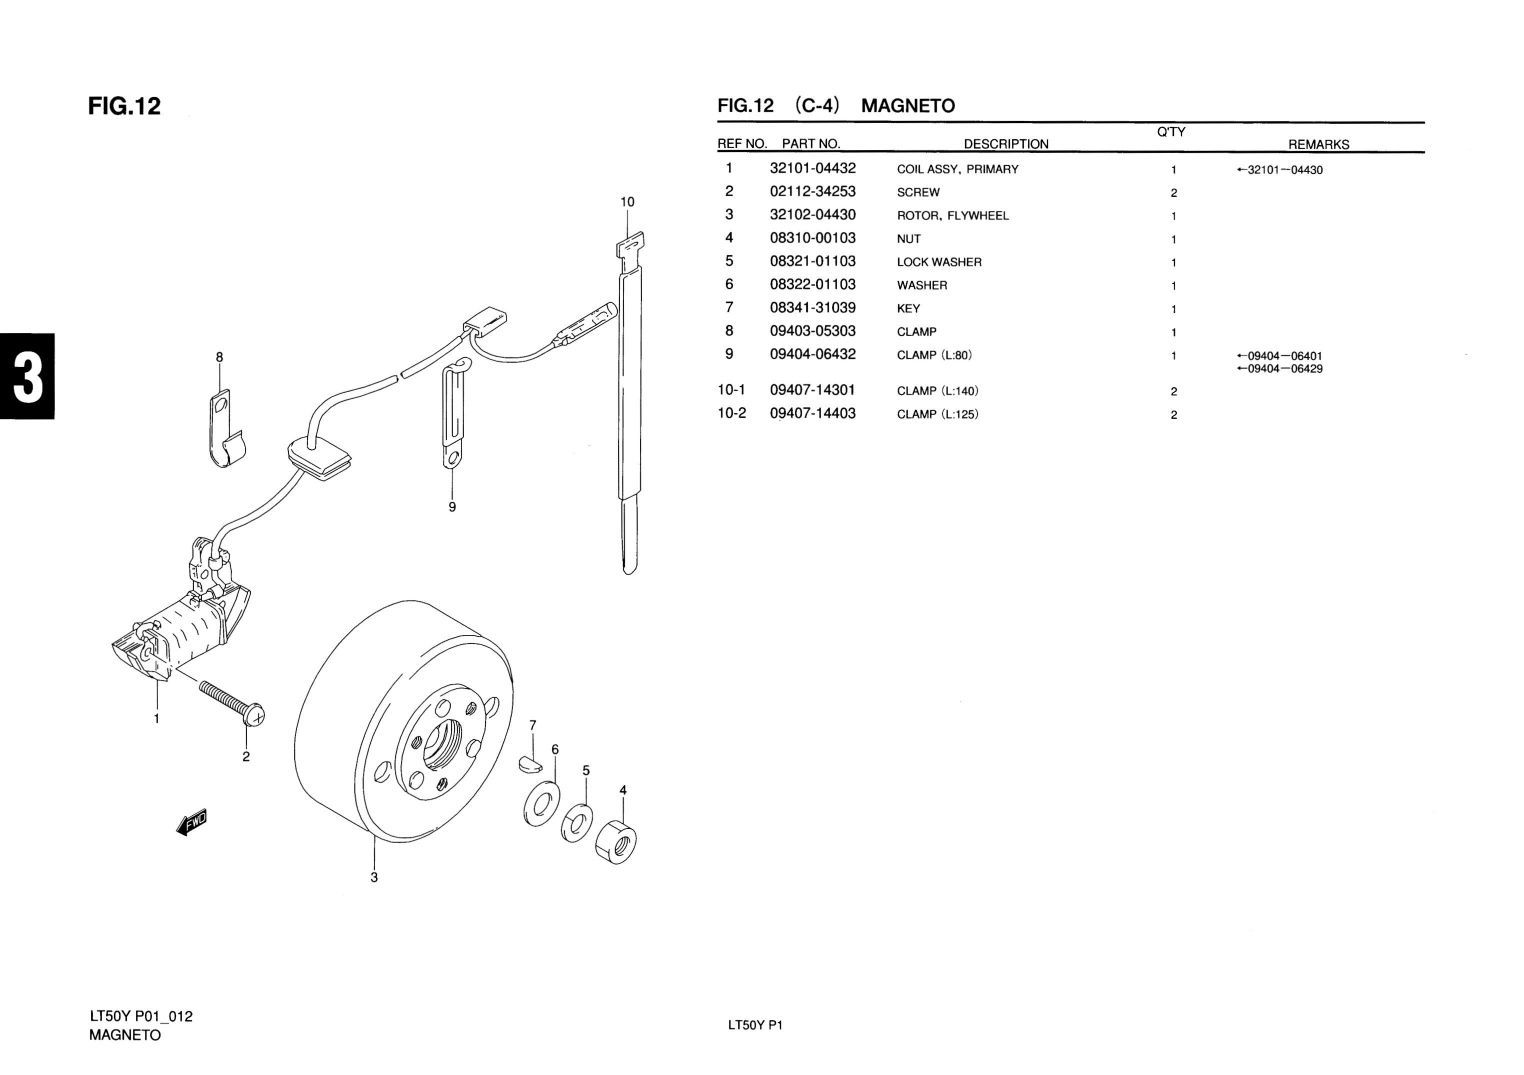 Suzuki Lt50 Magneto Diagram Great Installation Of Wiring Lt 50 Genuine Mini Atv Quad Primary Coil Assy 32101 Rh Ebay Com Jr50